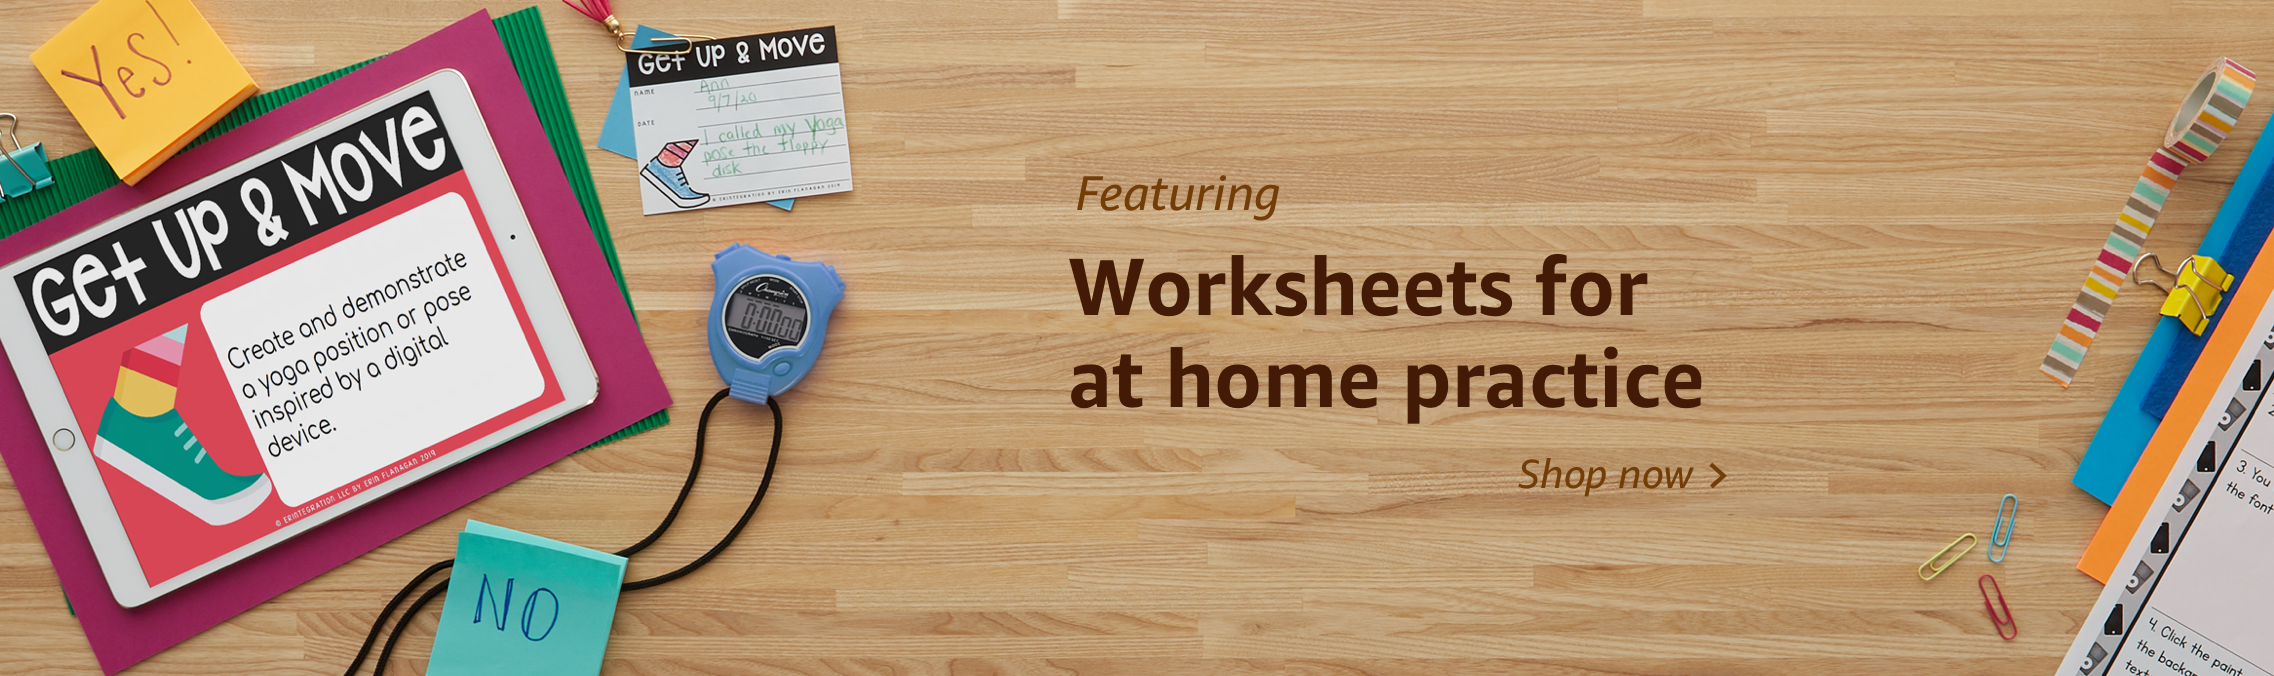 Worksheets for at home practice